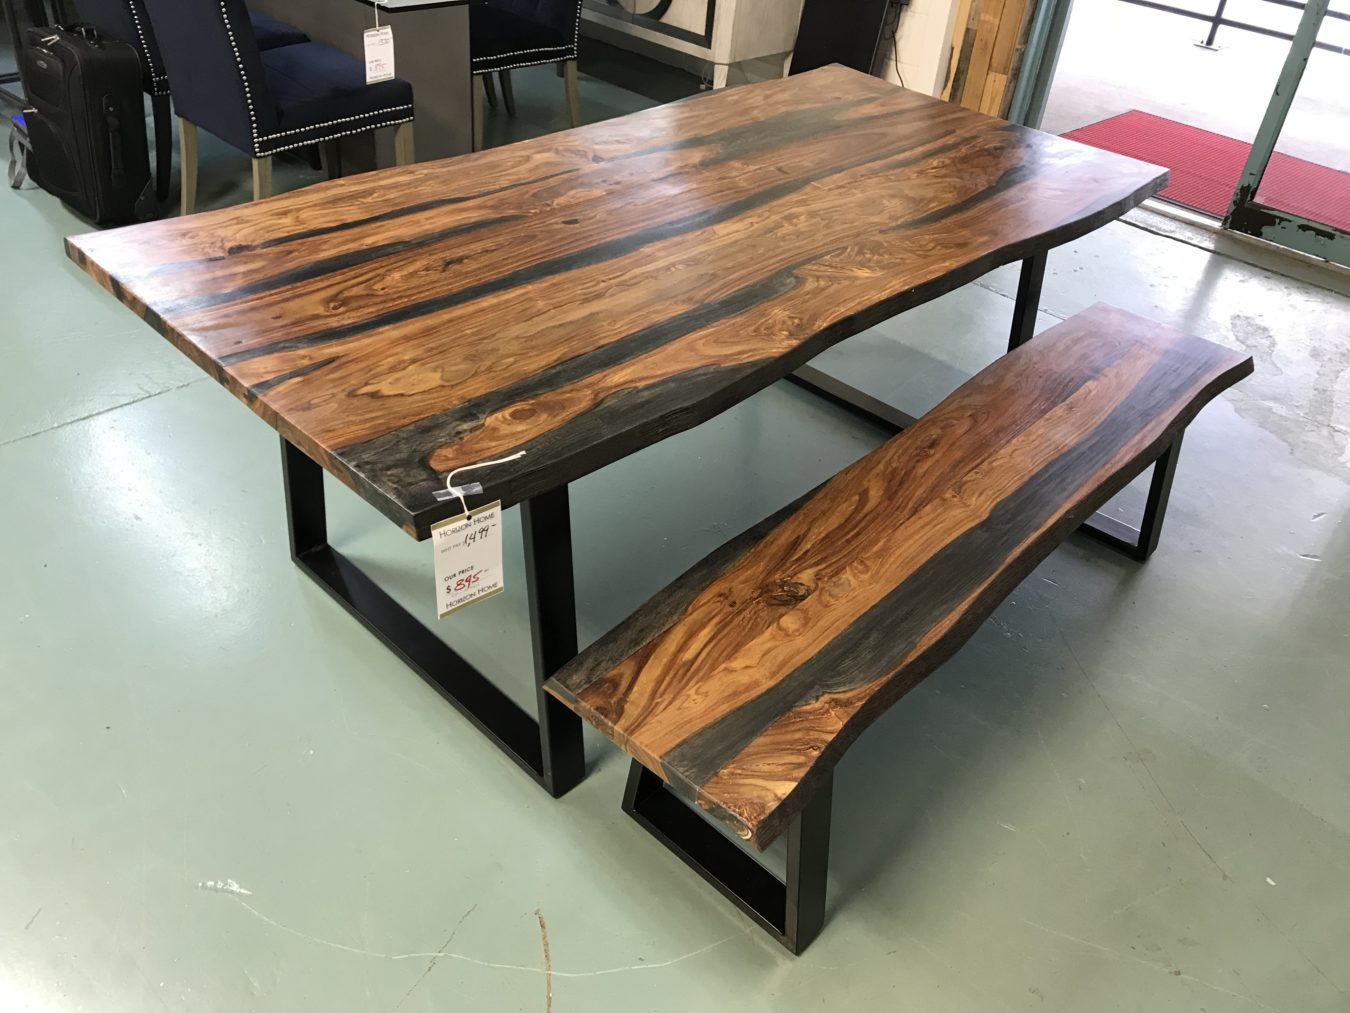 Surprising Live Edge Table W Matching Bench Gmtry Best Dining Table And Chair Ideas Images Gmtryco